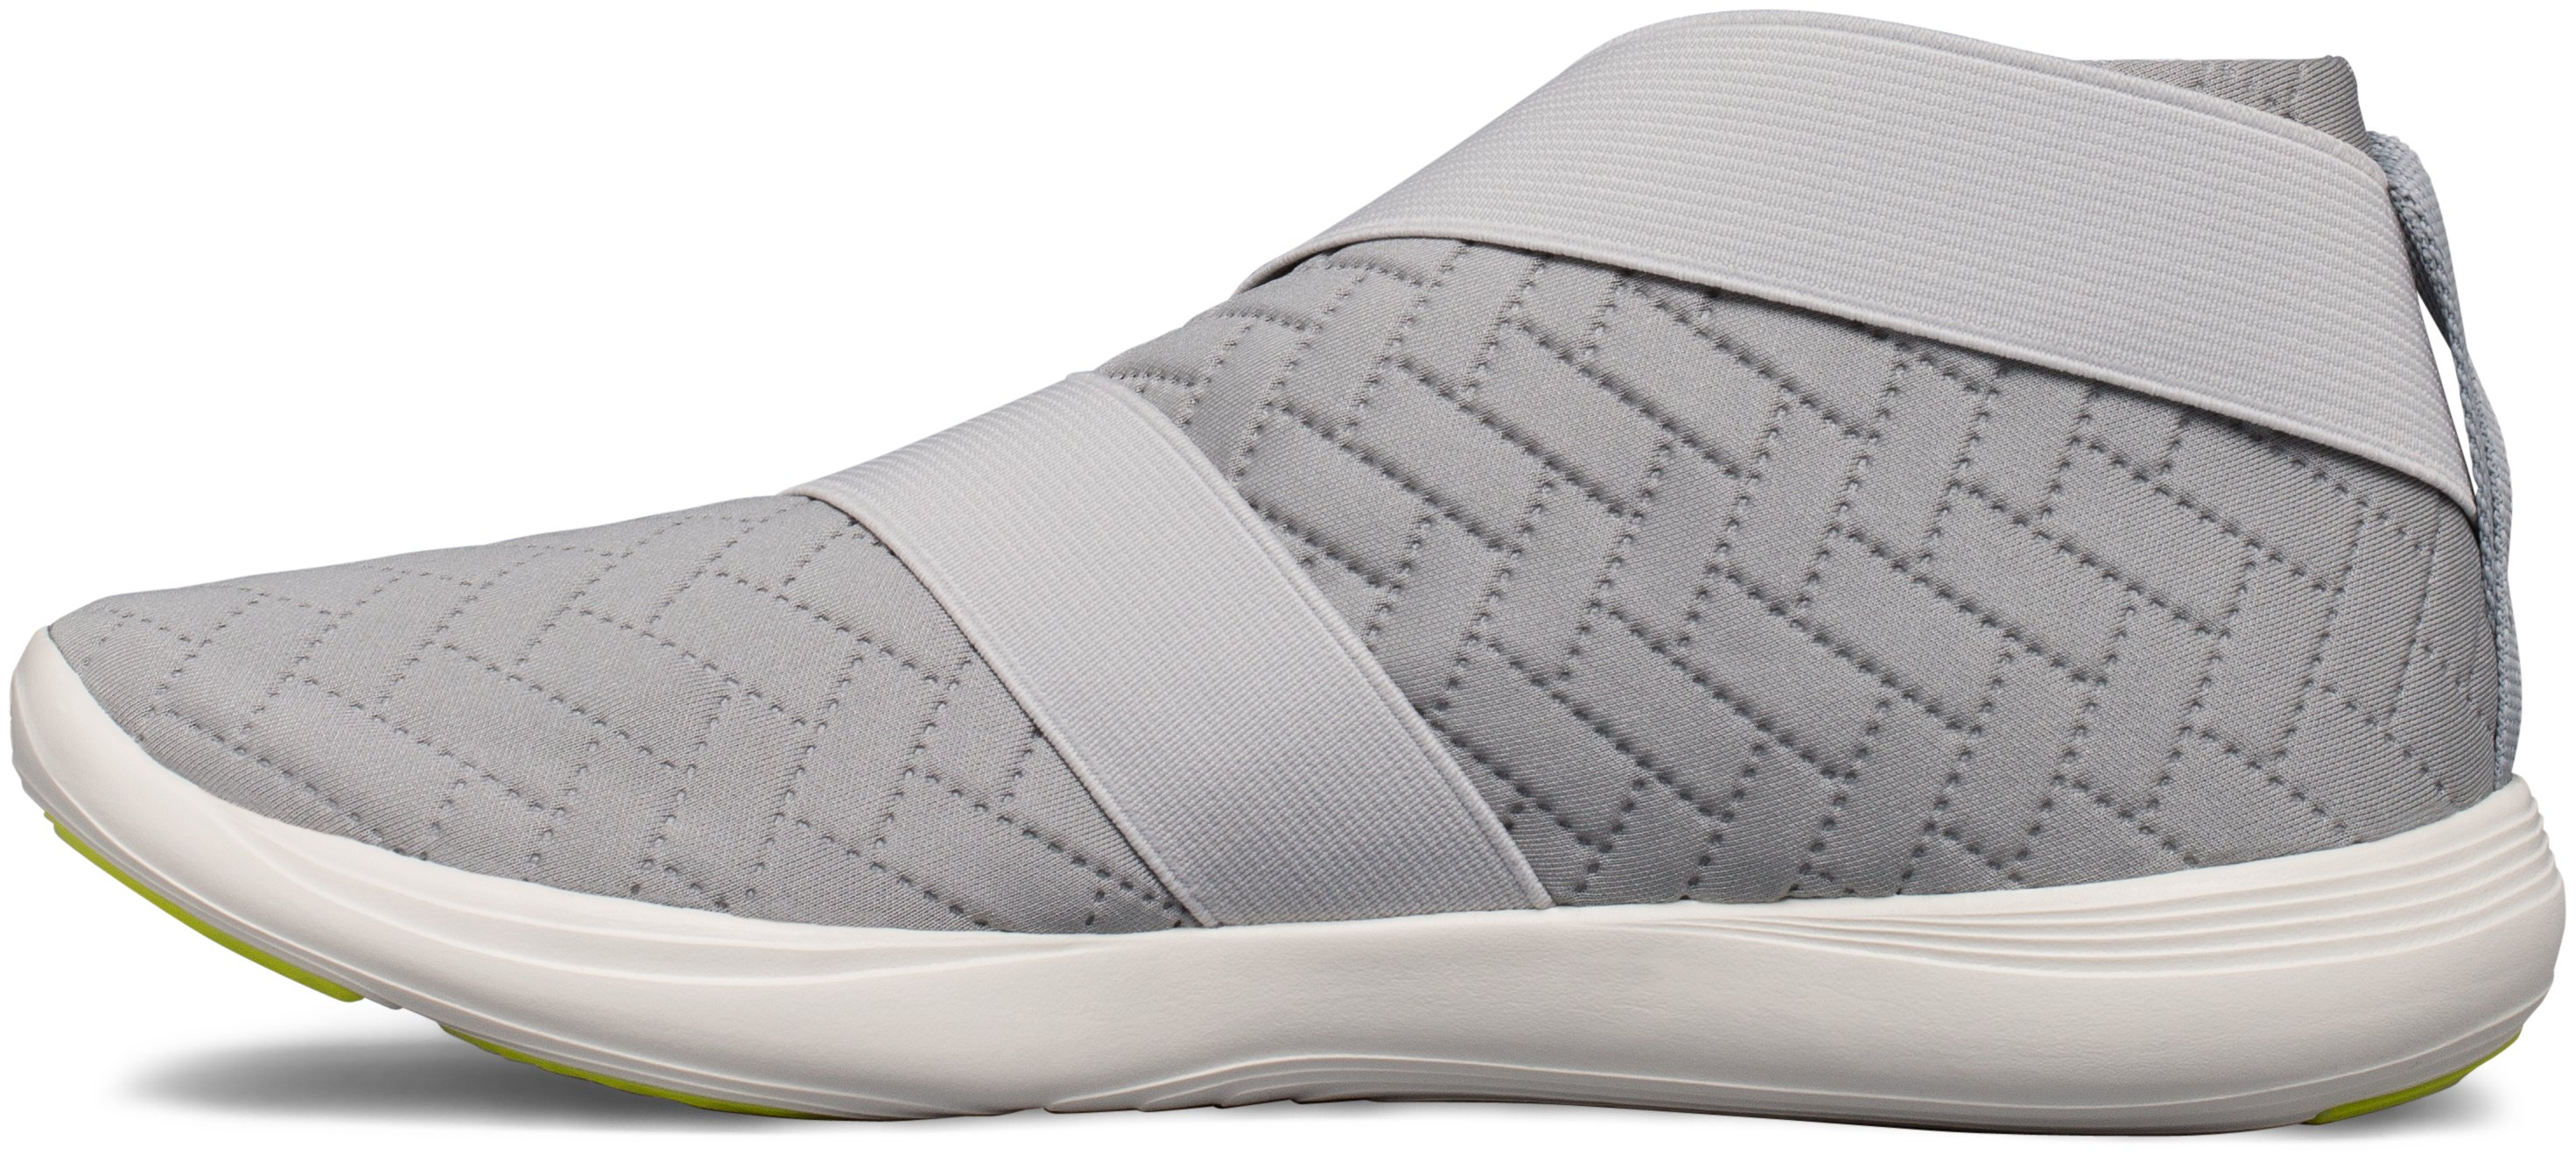 Women's UA Street Precision Slip Metallic Training Shoes, OVERCAST GRAY, undefined